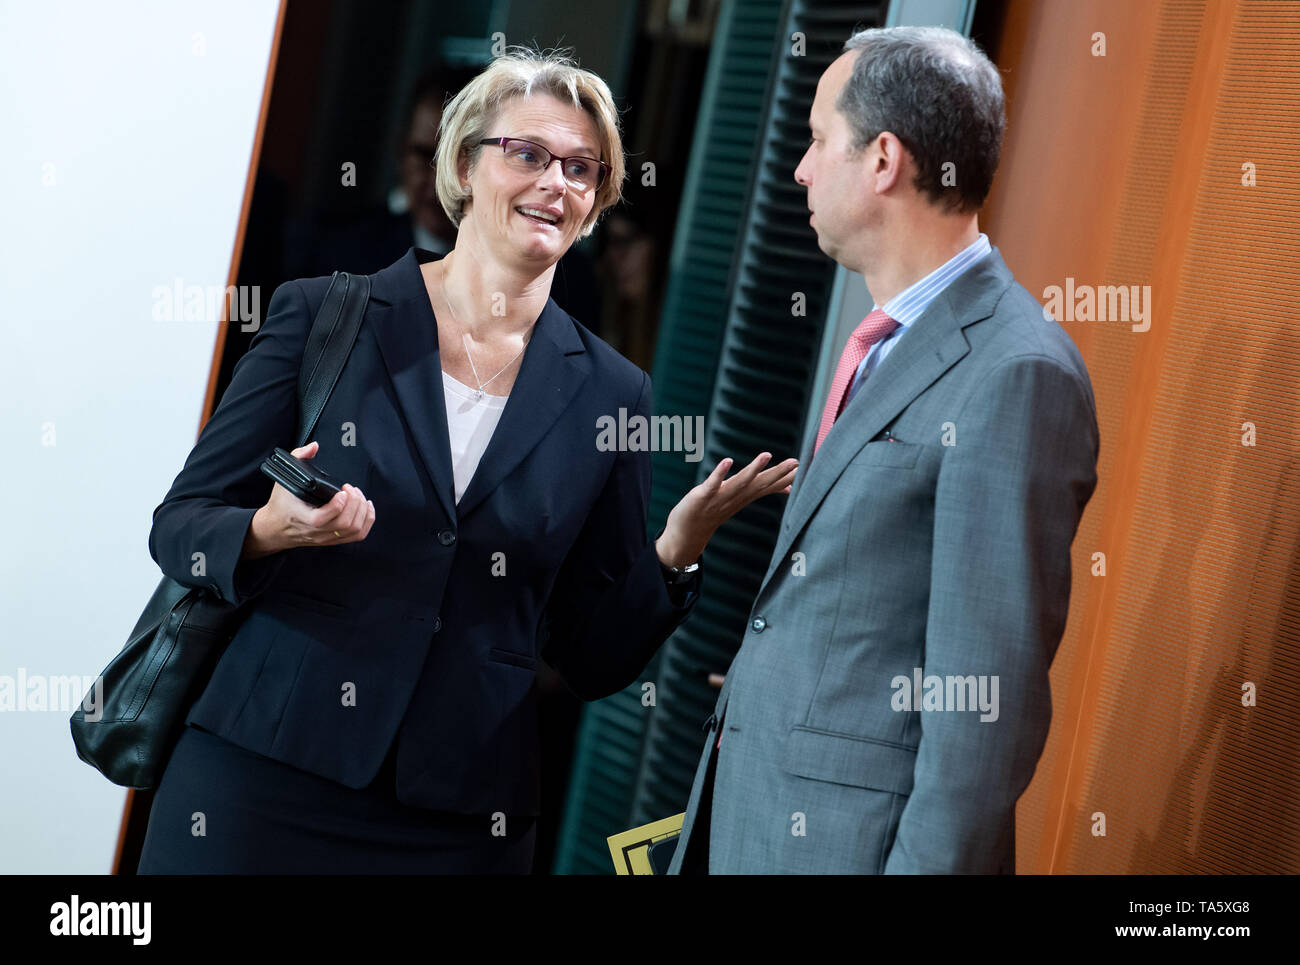 Berlin, Germany. 22nd May, 2019. Anja Karliczek (l, CDU), Federal Minister of Education and Research, and Hendrik Hoppenstedt (CDU), Minister of State for Cooperation between the Federal Government and the Länder, meet in the Federal Chancellery at the beginning of the cabinet meeting. At today's meeting, the members of the Federal Government will discuss, among other things, the billions in aid for structural change in the coal-mining regions and a draft law on tax incentives for research and development. Credit: Bernd von Jutrczenka/dpa/Alamy Live News - Stock Image